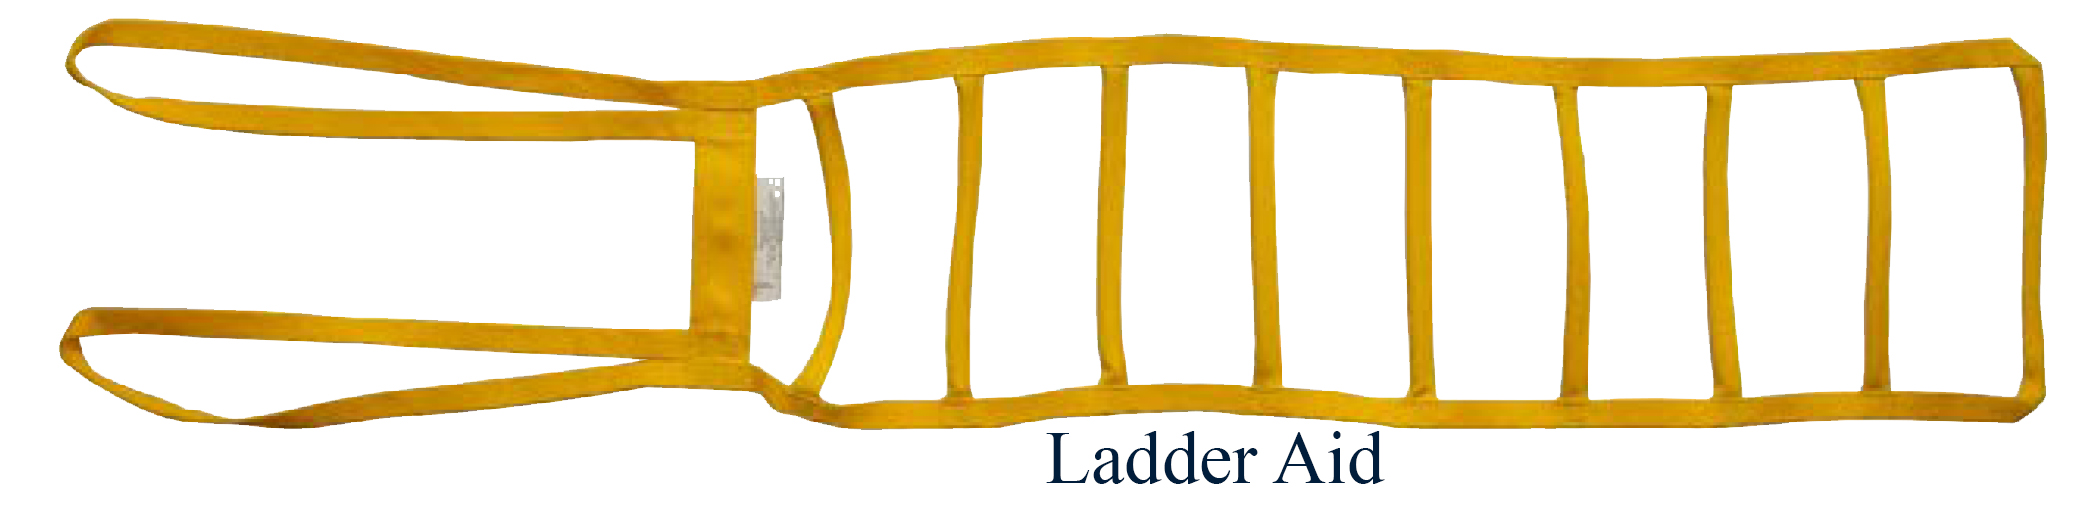 ladder aid, medcare products, transfer aids